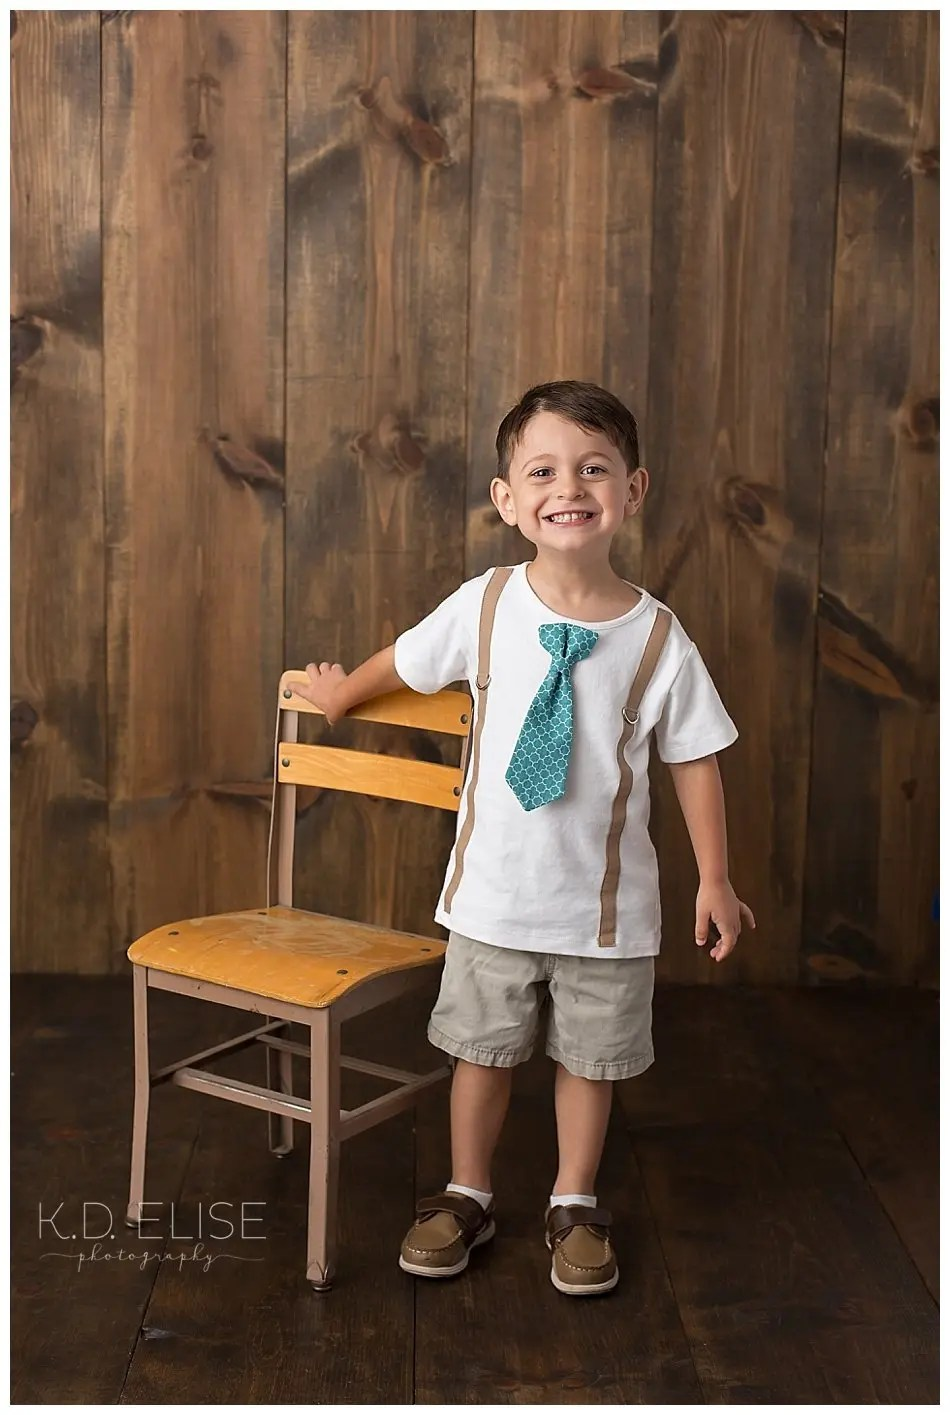 Smiling little boy in a tie shirt standing next to a wooden chair.